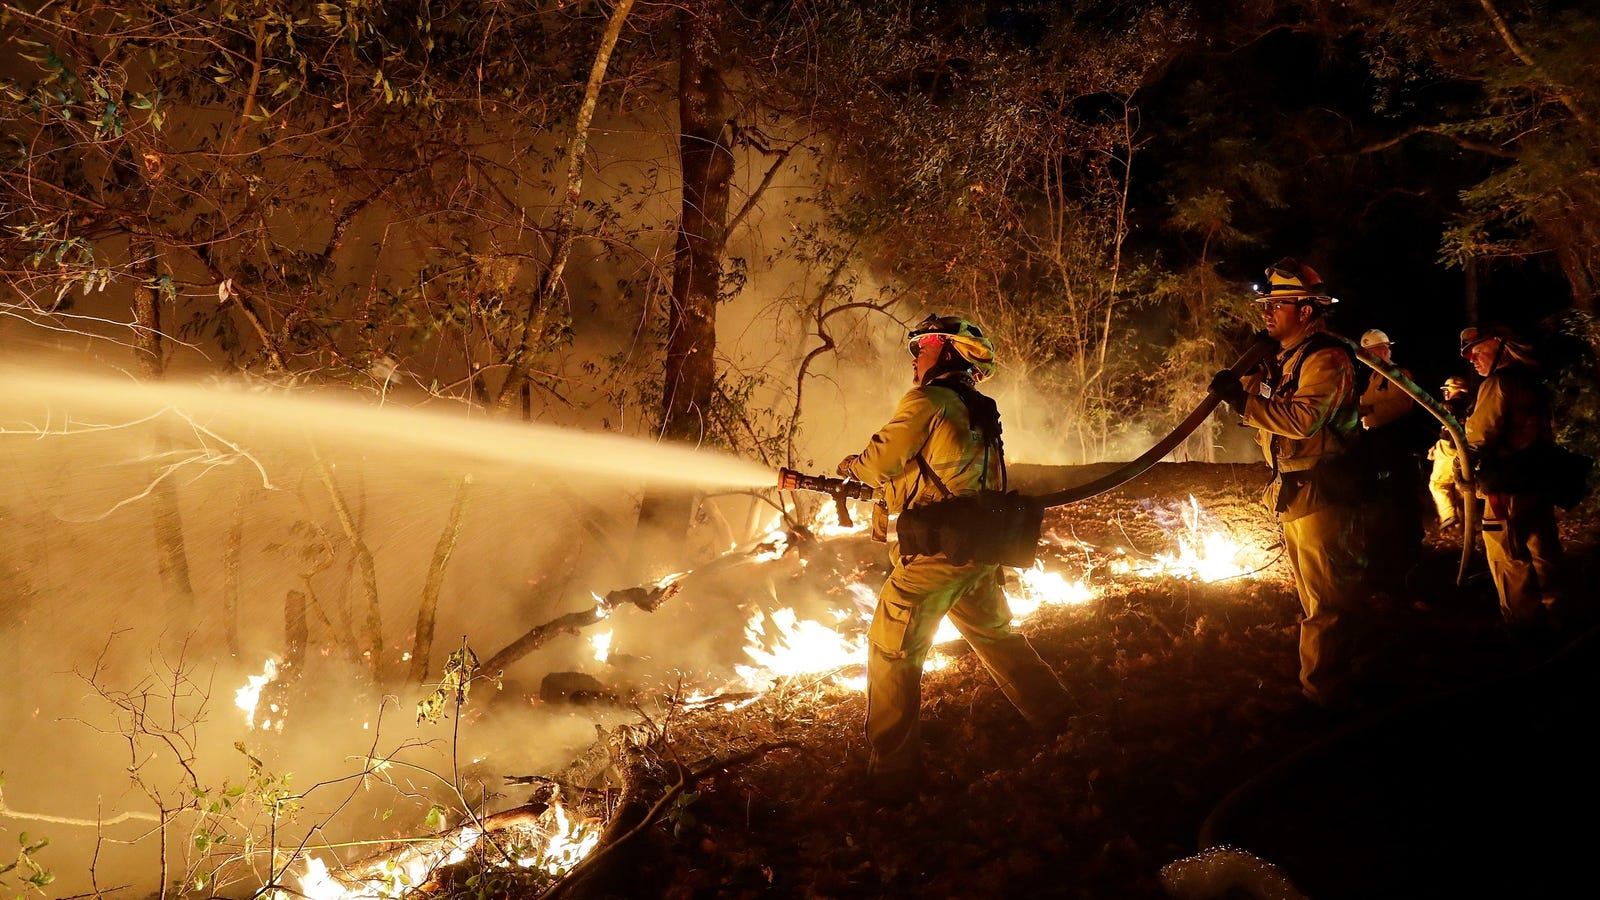 Hey, Maybe Don't Fly Drones Where Firefighters Are Trying to Save Lives